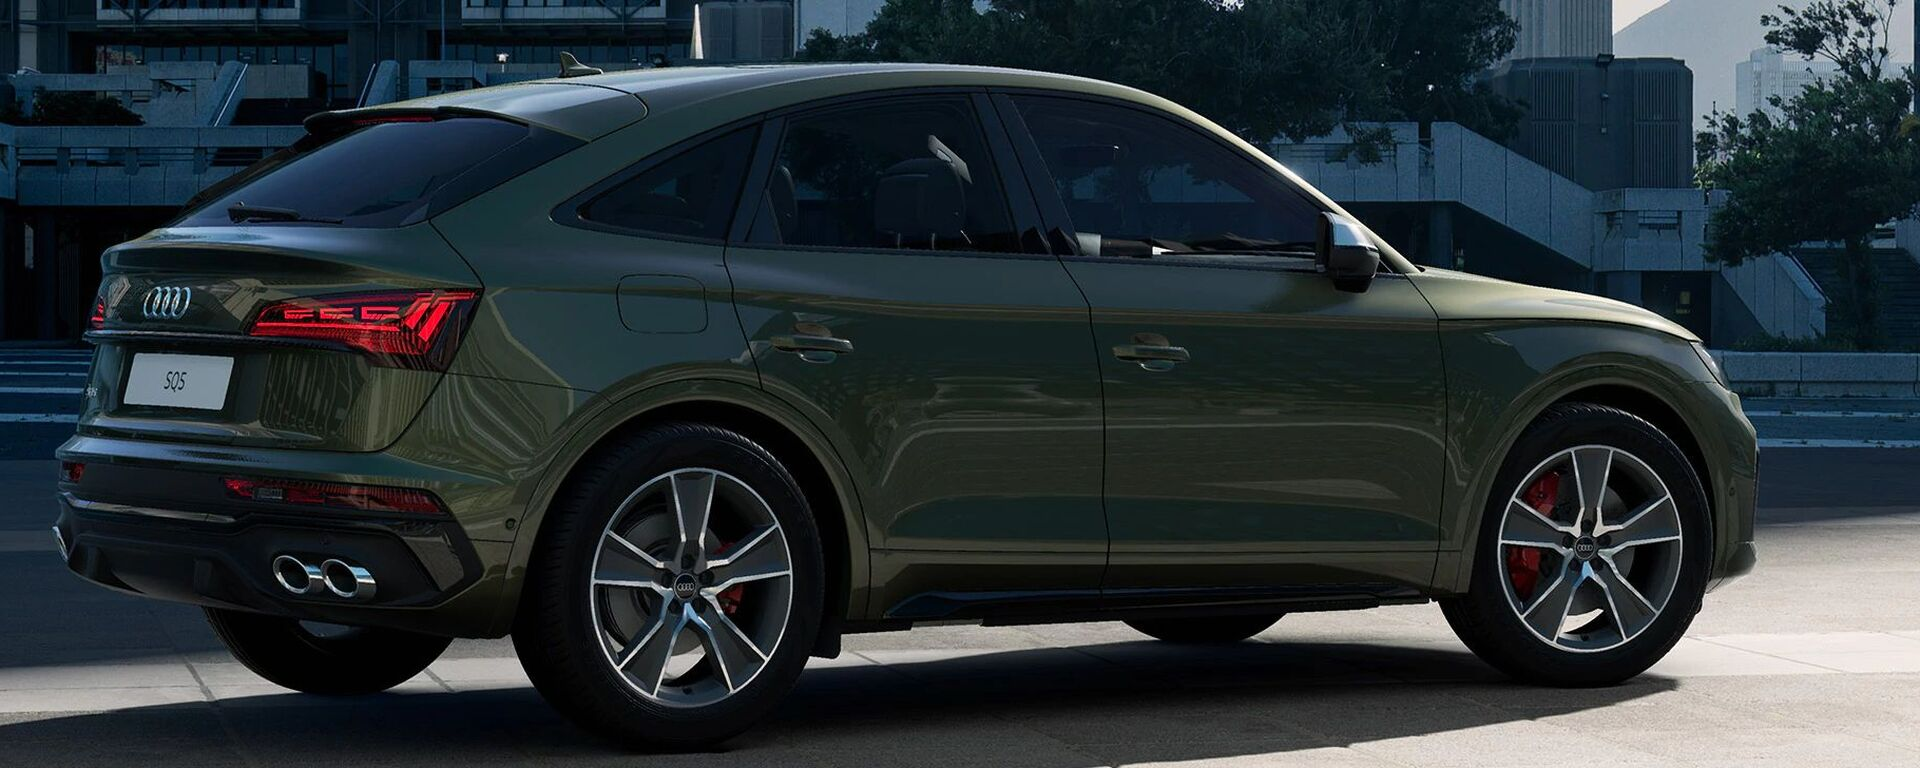 Audi SQ5 Sportback 2021 in Distriktgrün Metallic